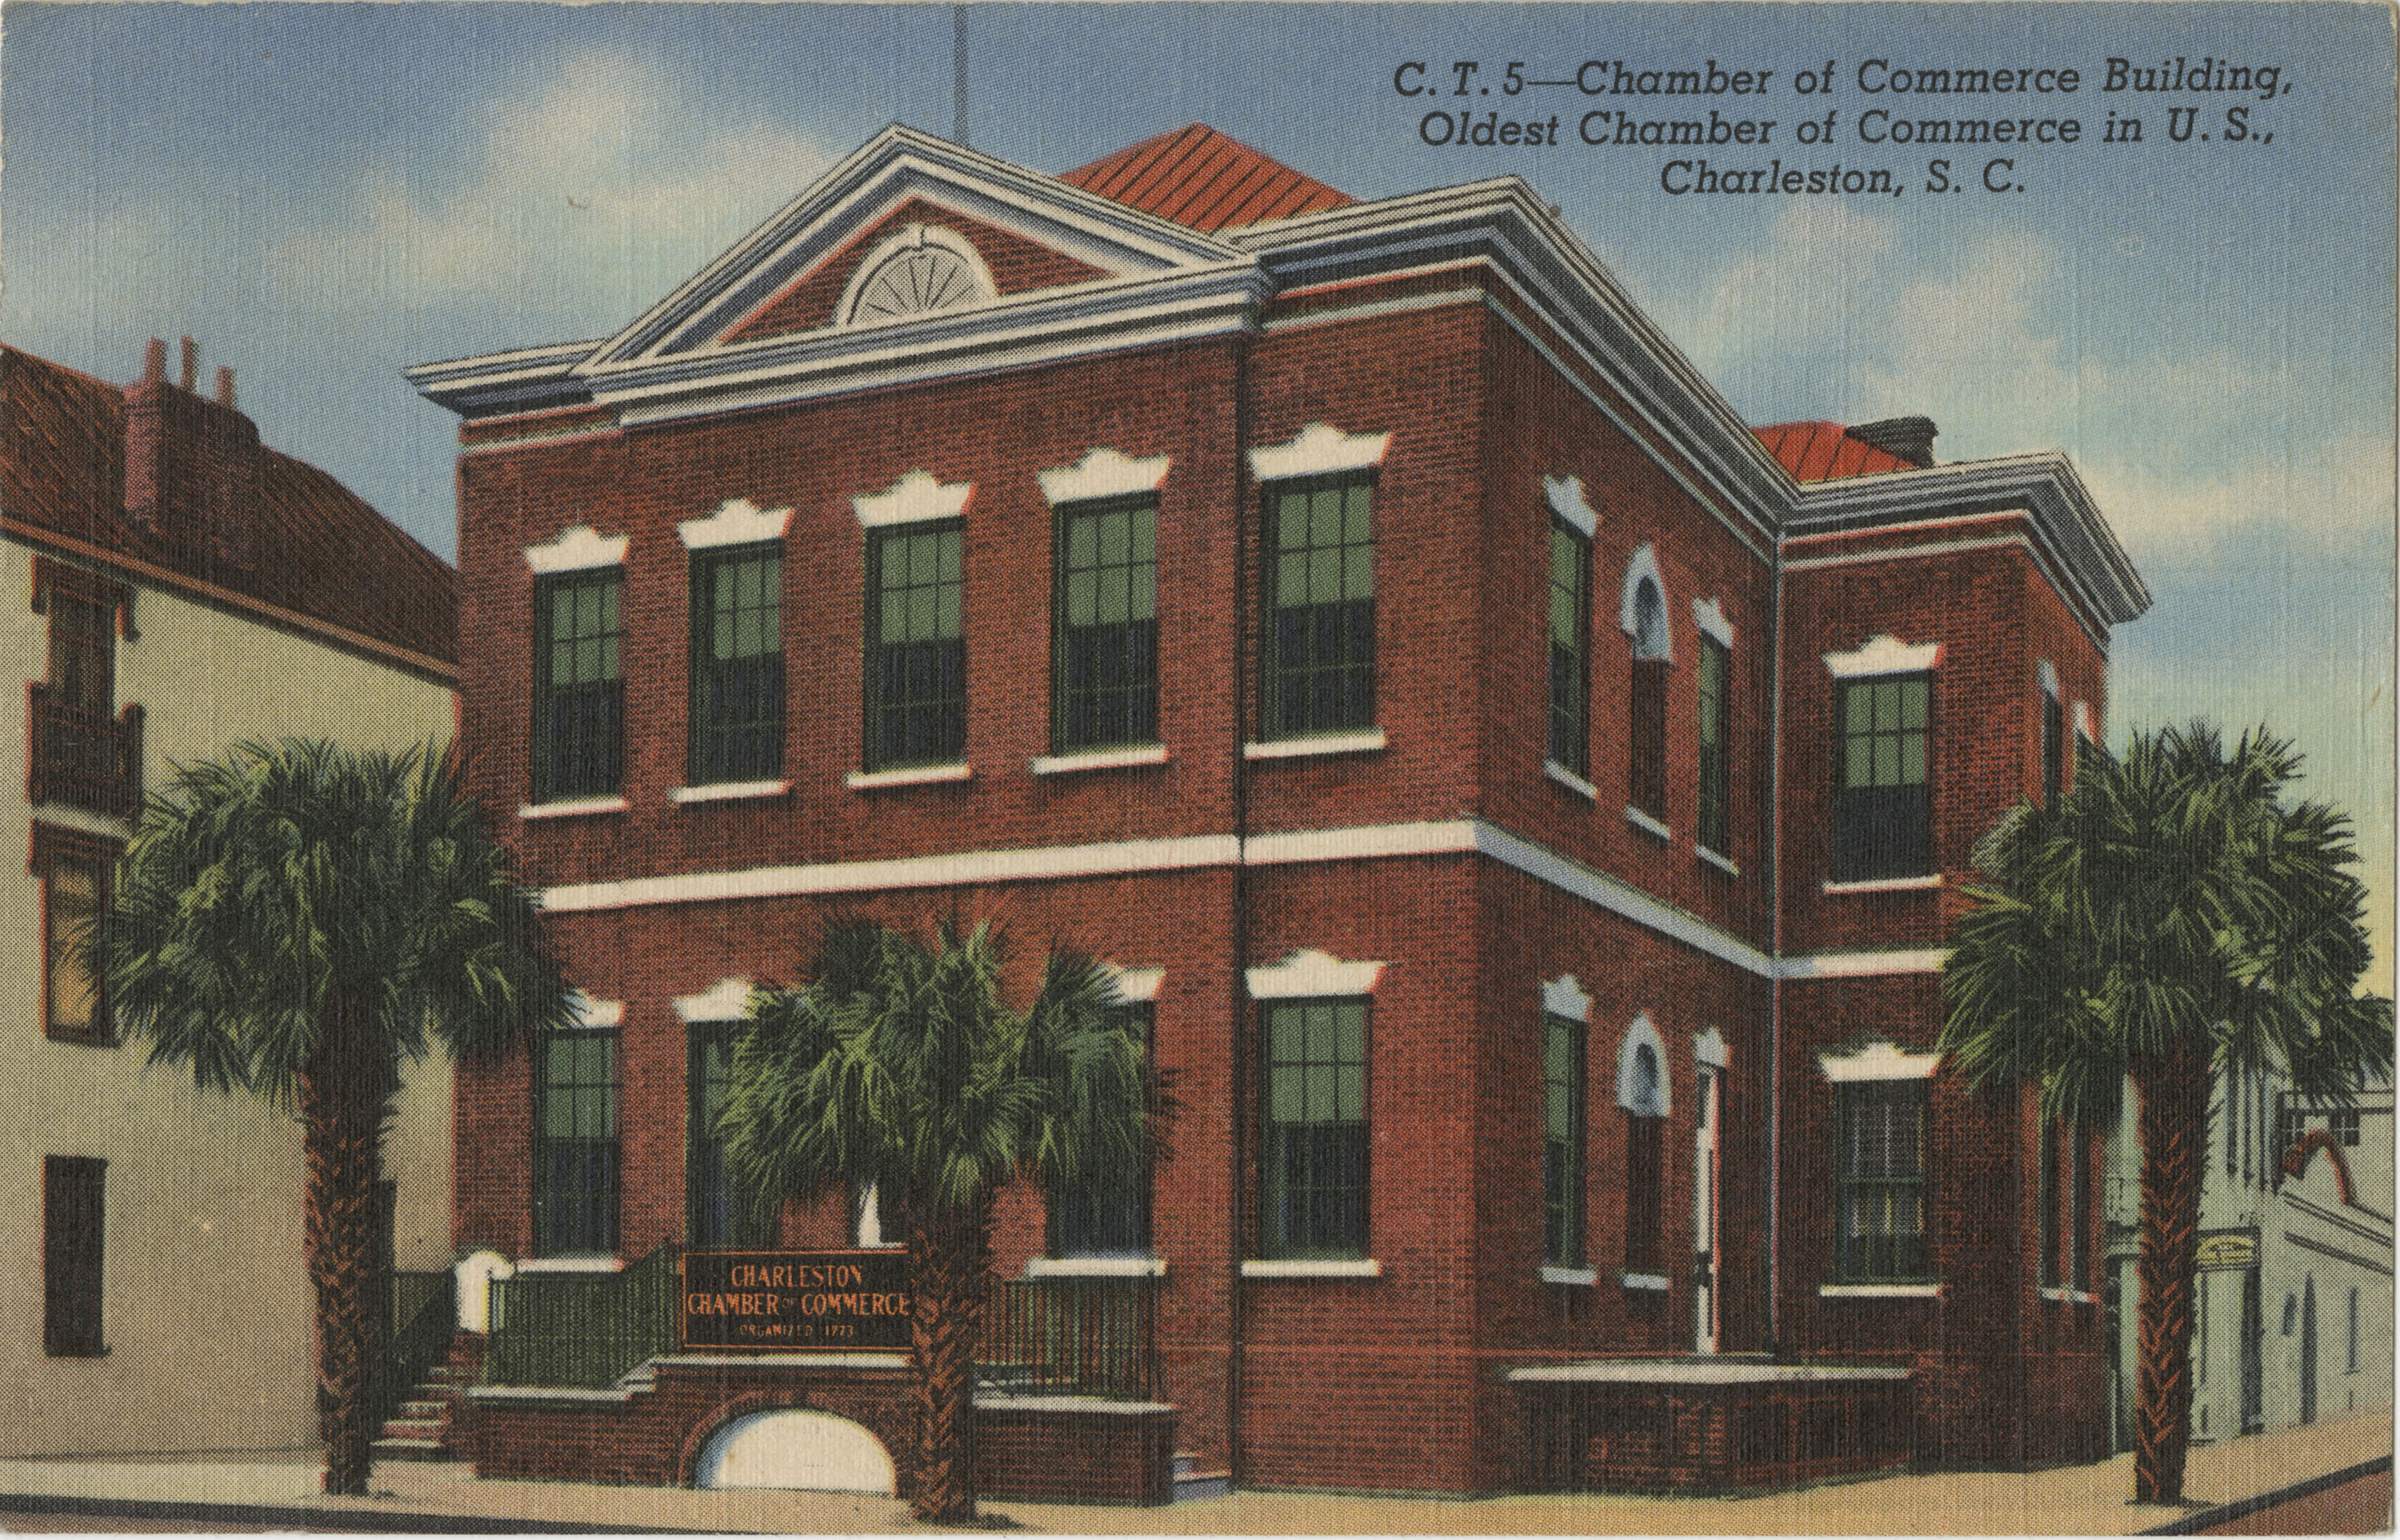 Chamber of Commerce Building, Oldest Chamber of Commerce in U.S., Charleston, S.C.